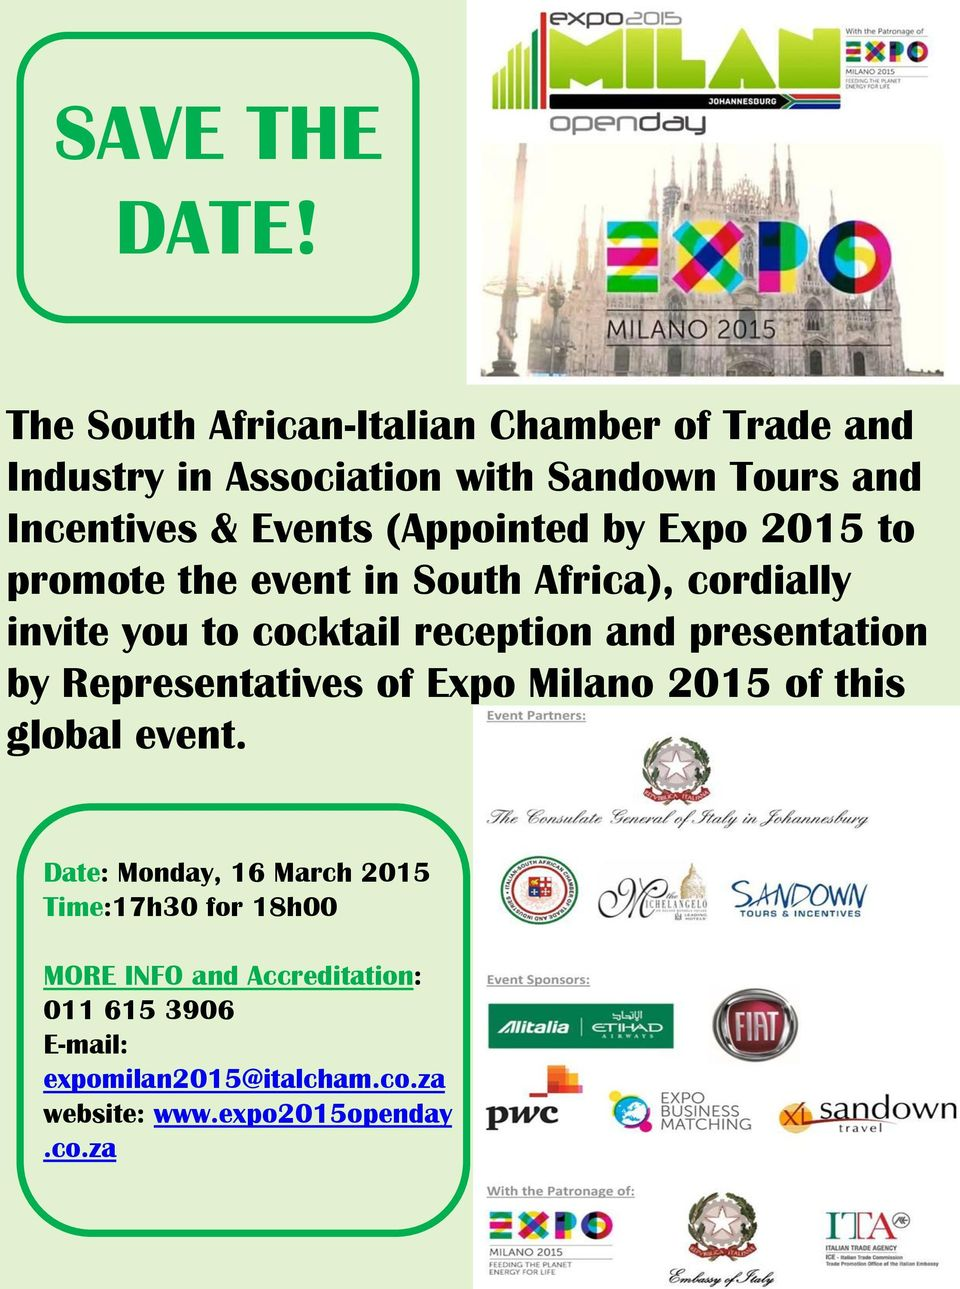 (Appointed by Expo 2015 to promote the event in South Africa), cordially invite you to cocktail reception and